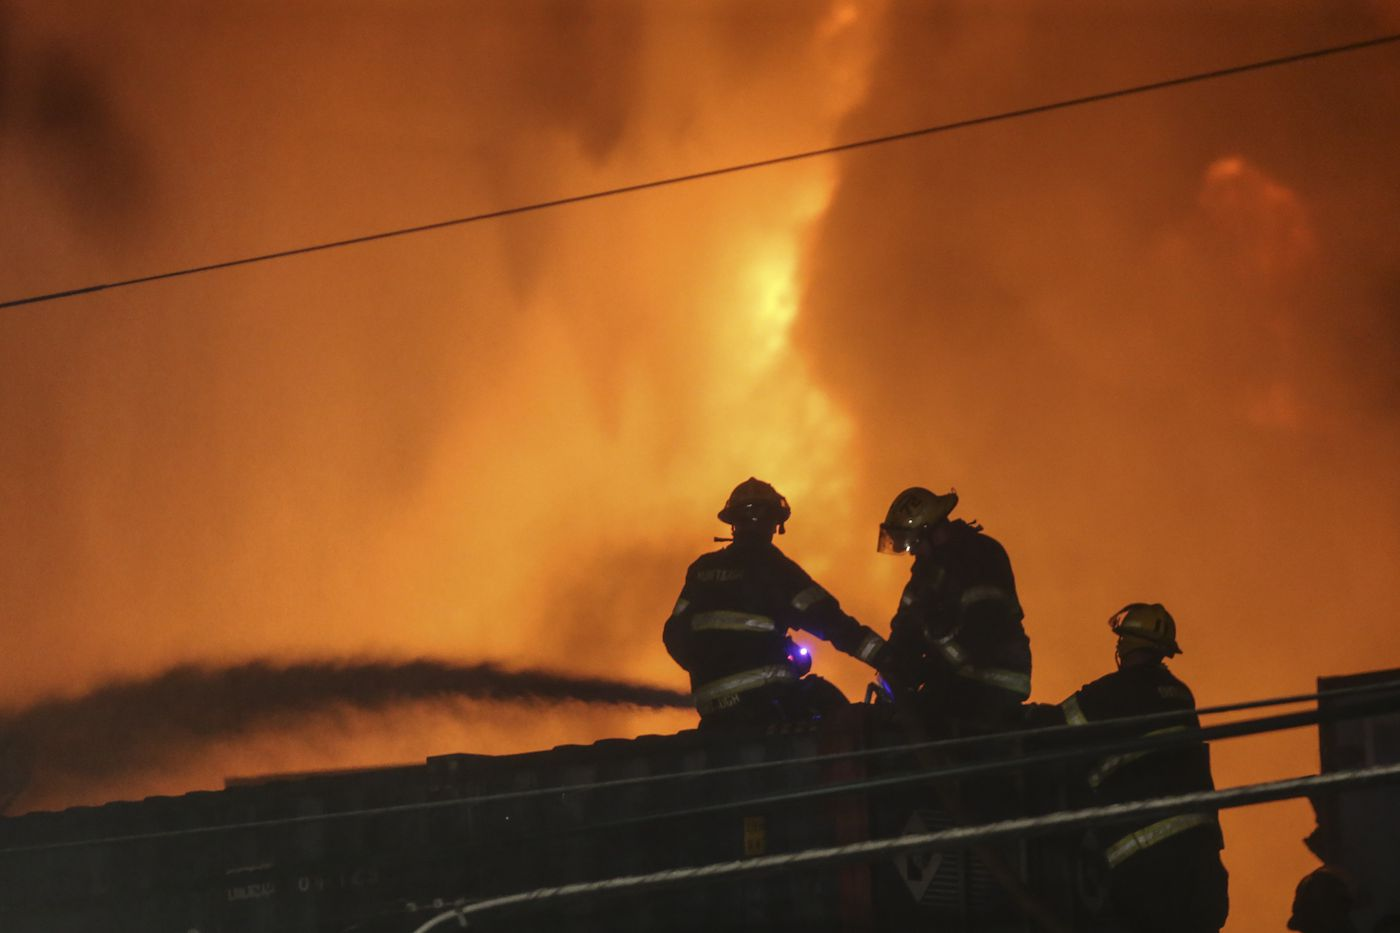 Junkyard fire highlights improvements in Philly's safety enforcement | Editorial